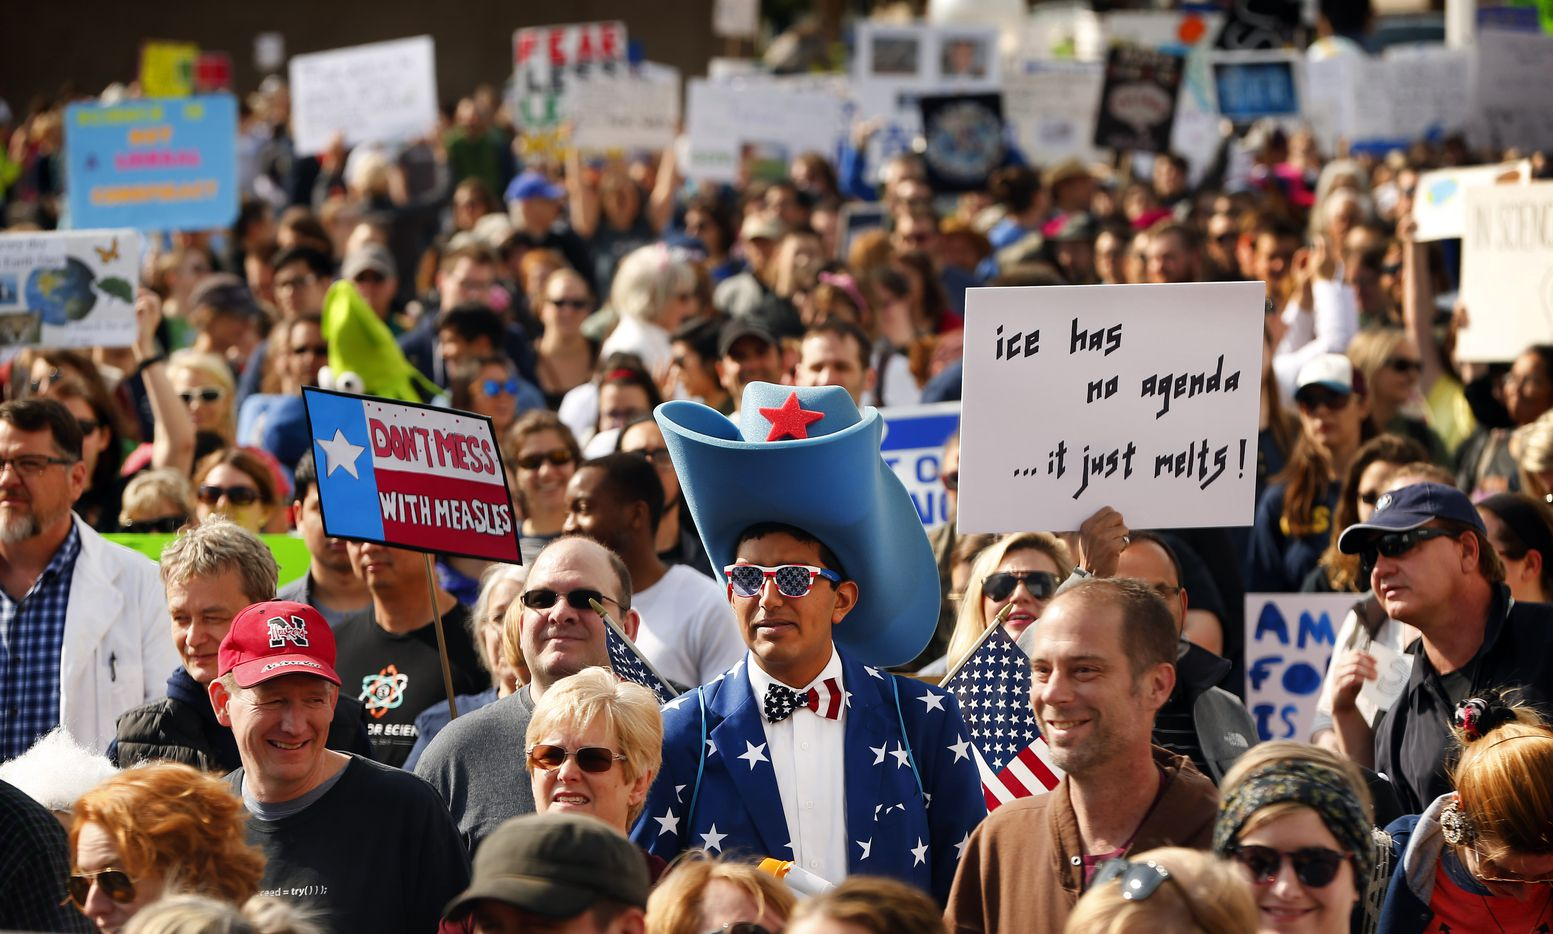 The March For Science rally kicked off with supporters rallying at Dallas City Hall before marching to Fair Park's Earth Day celebration, Saturday, April 22, 2017. (Tom Fox/The Dallas Morning News)